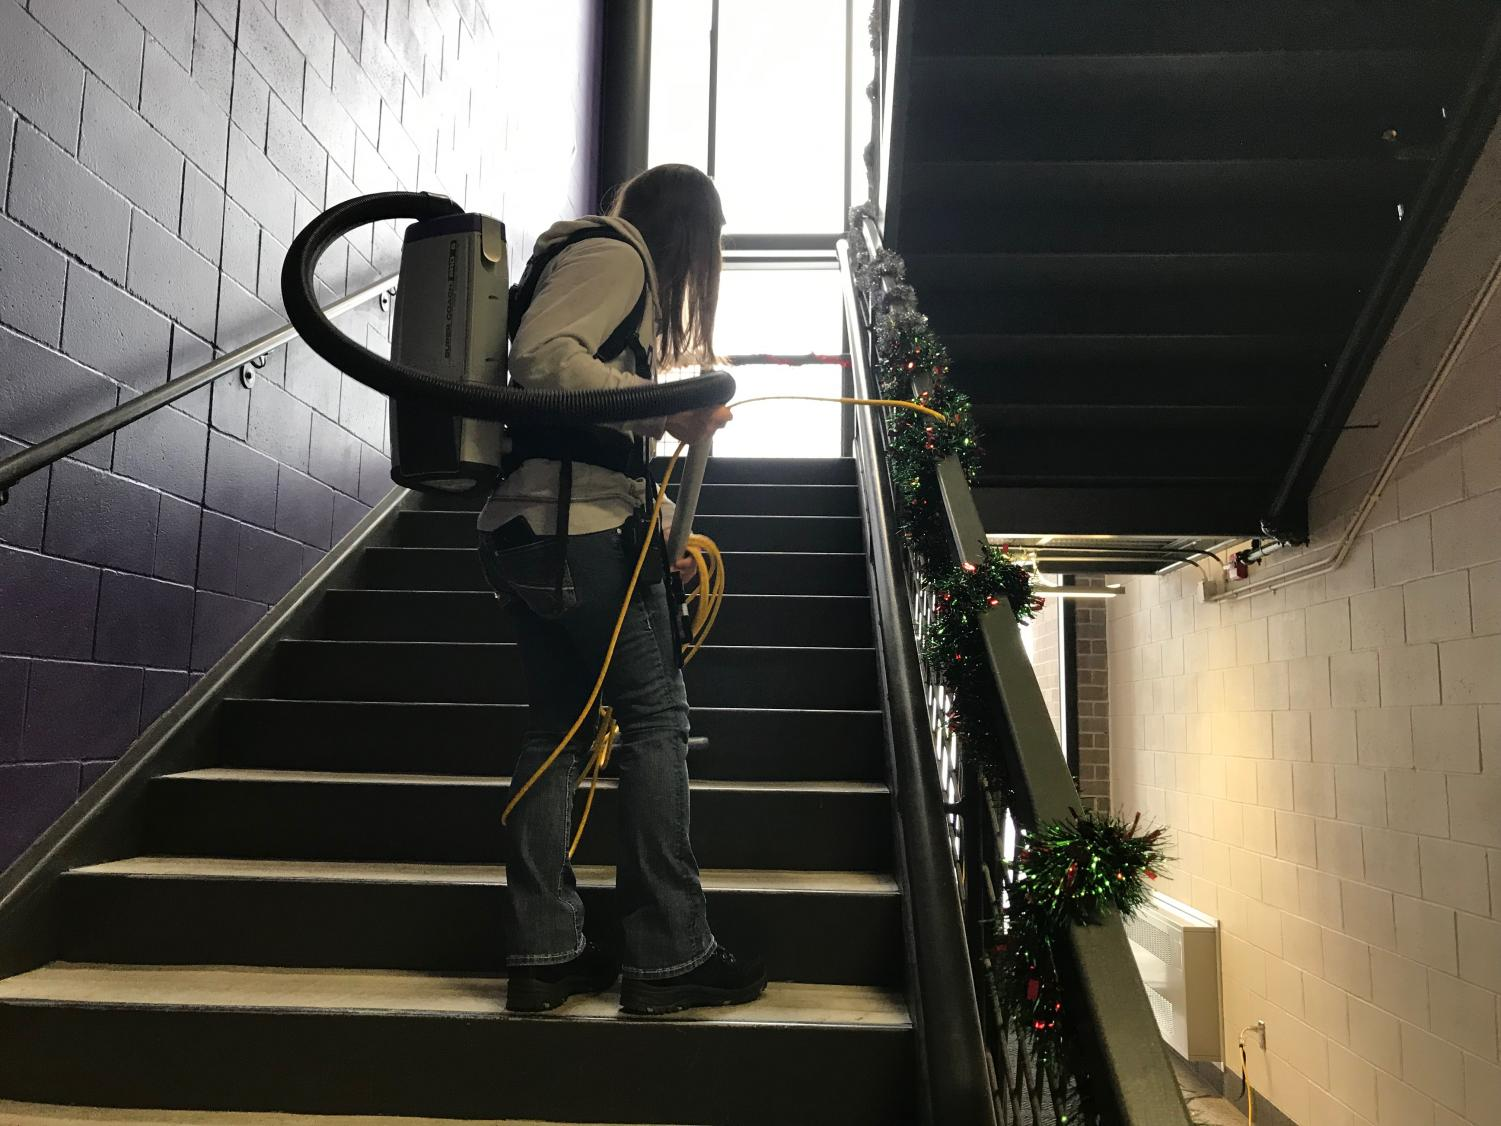 Vac Pack or Jet Pack? Head Custodian Sandy Stitzinger keeping the stairwell in ship shape